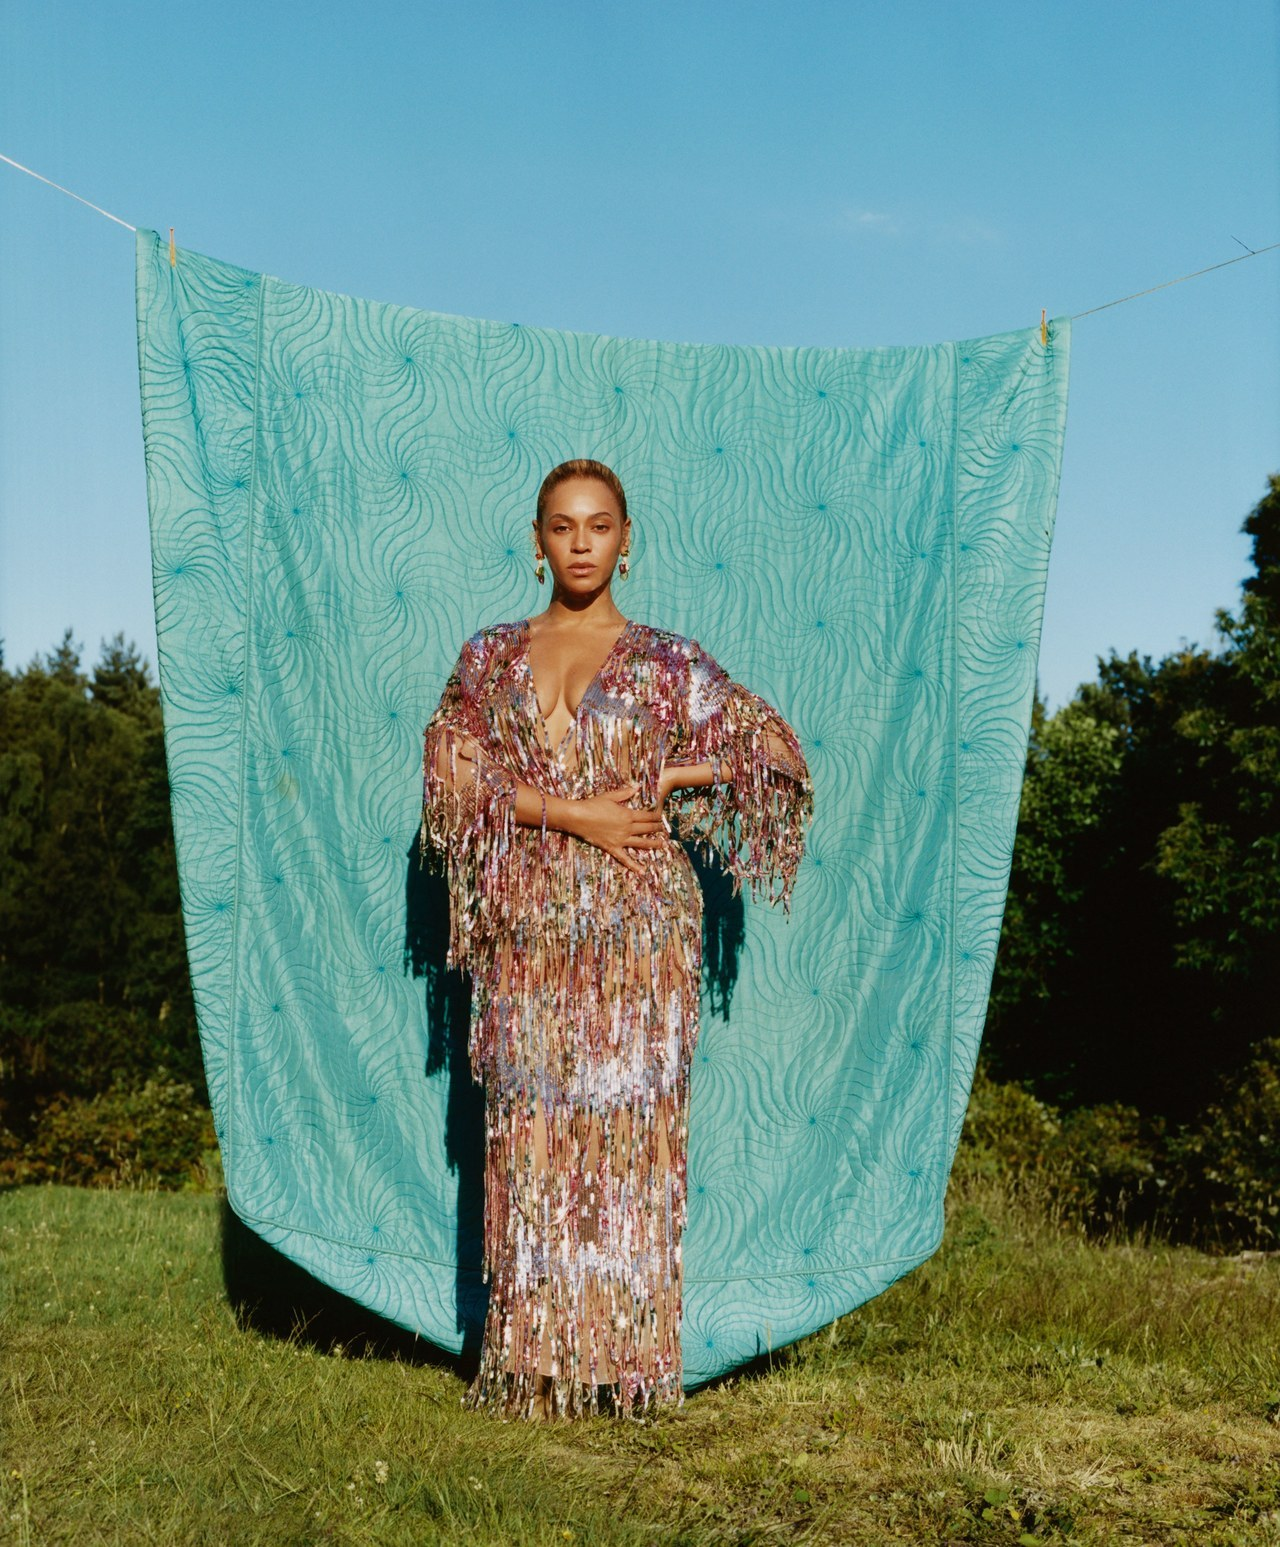 Beyonce+by+Tyler+Mitchell+for+Vogue+US+Sept+2018+(1).jpg